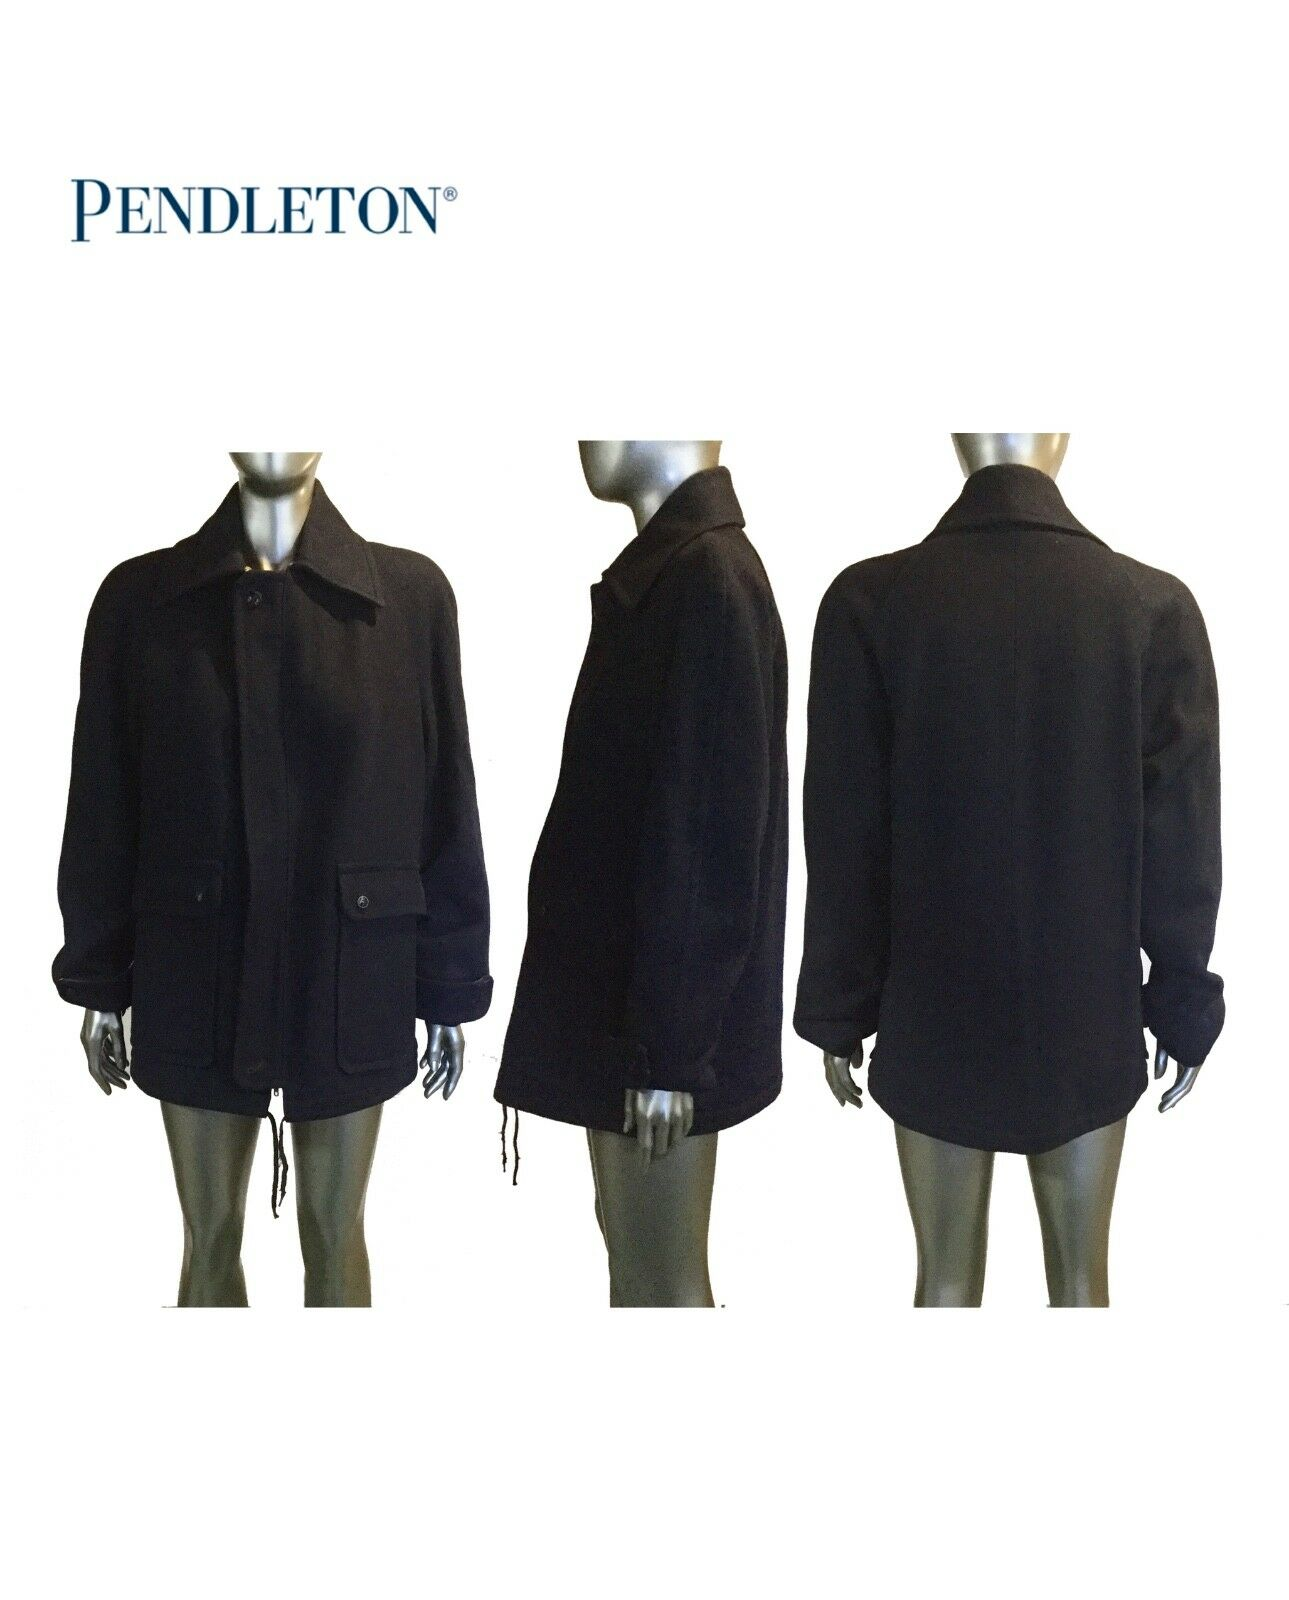 Vintage Pendleton Coat, Col Navy, With Plaid lining, Größe 20 inches/ 28.5 inches